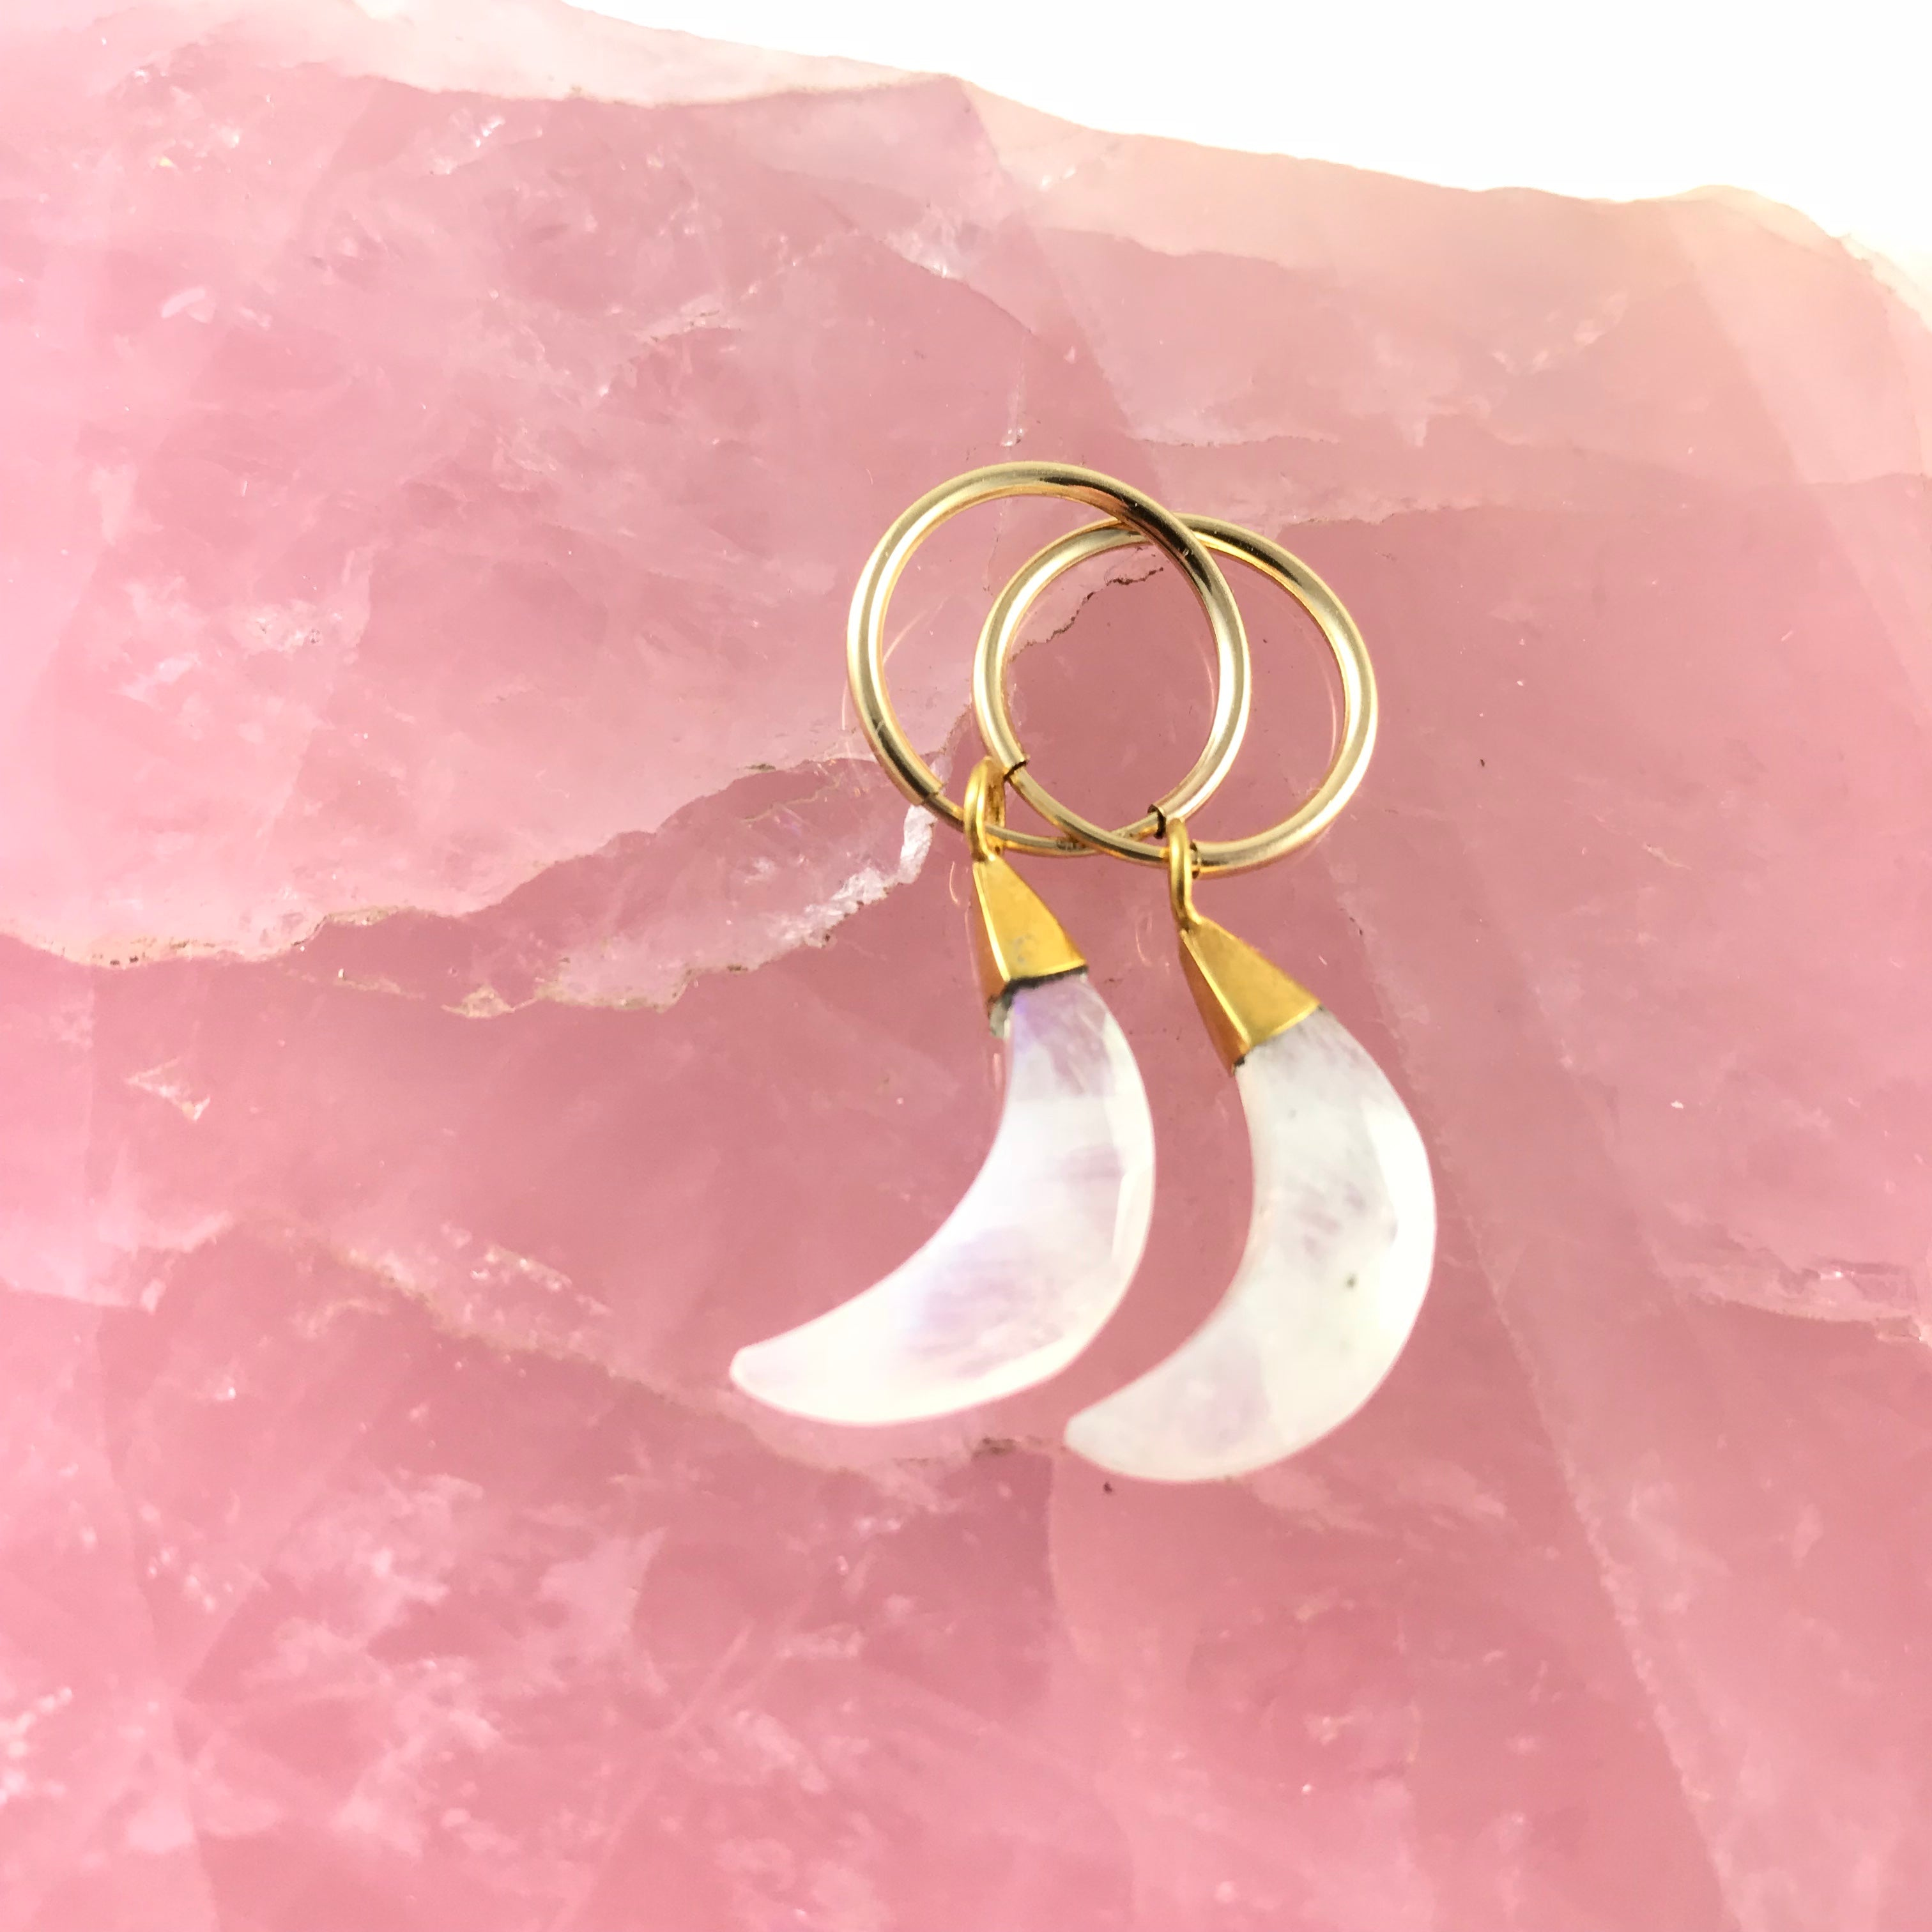 THE CRESCENT MOON EARRINGS